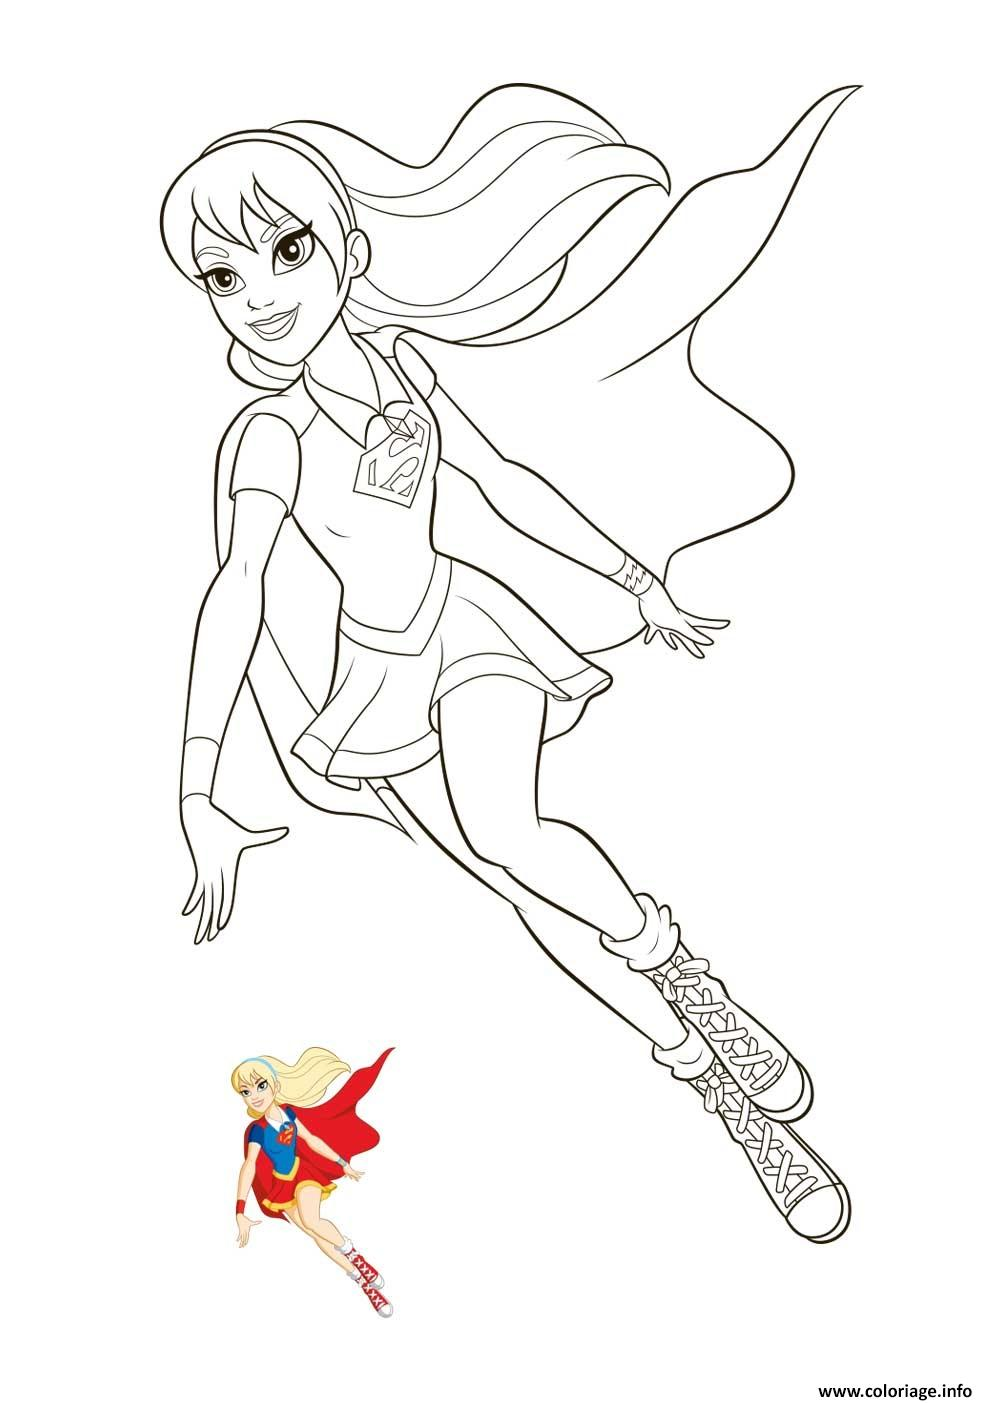 Coloriage supergirl super hero girls - Dessin de super heros ...